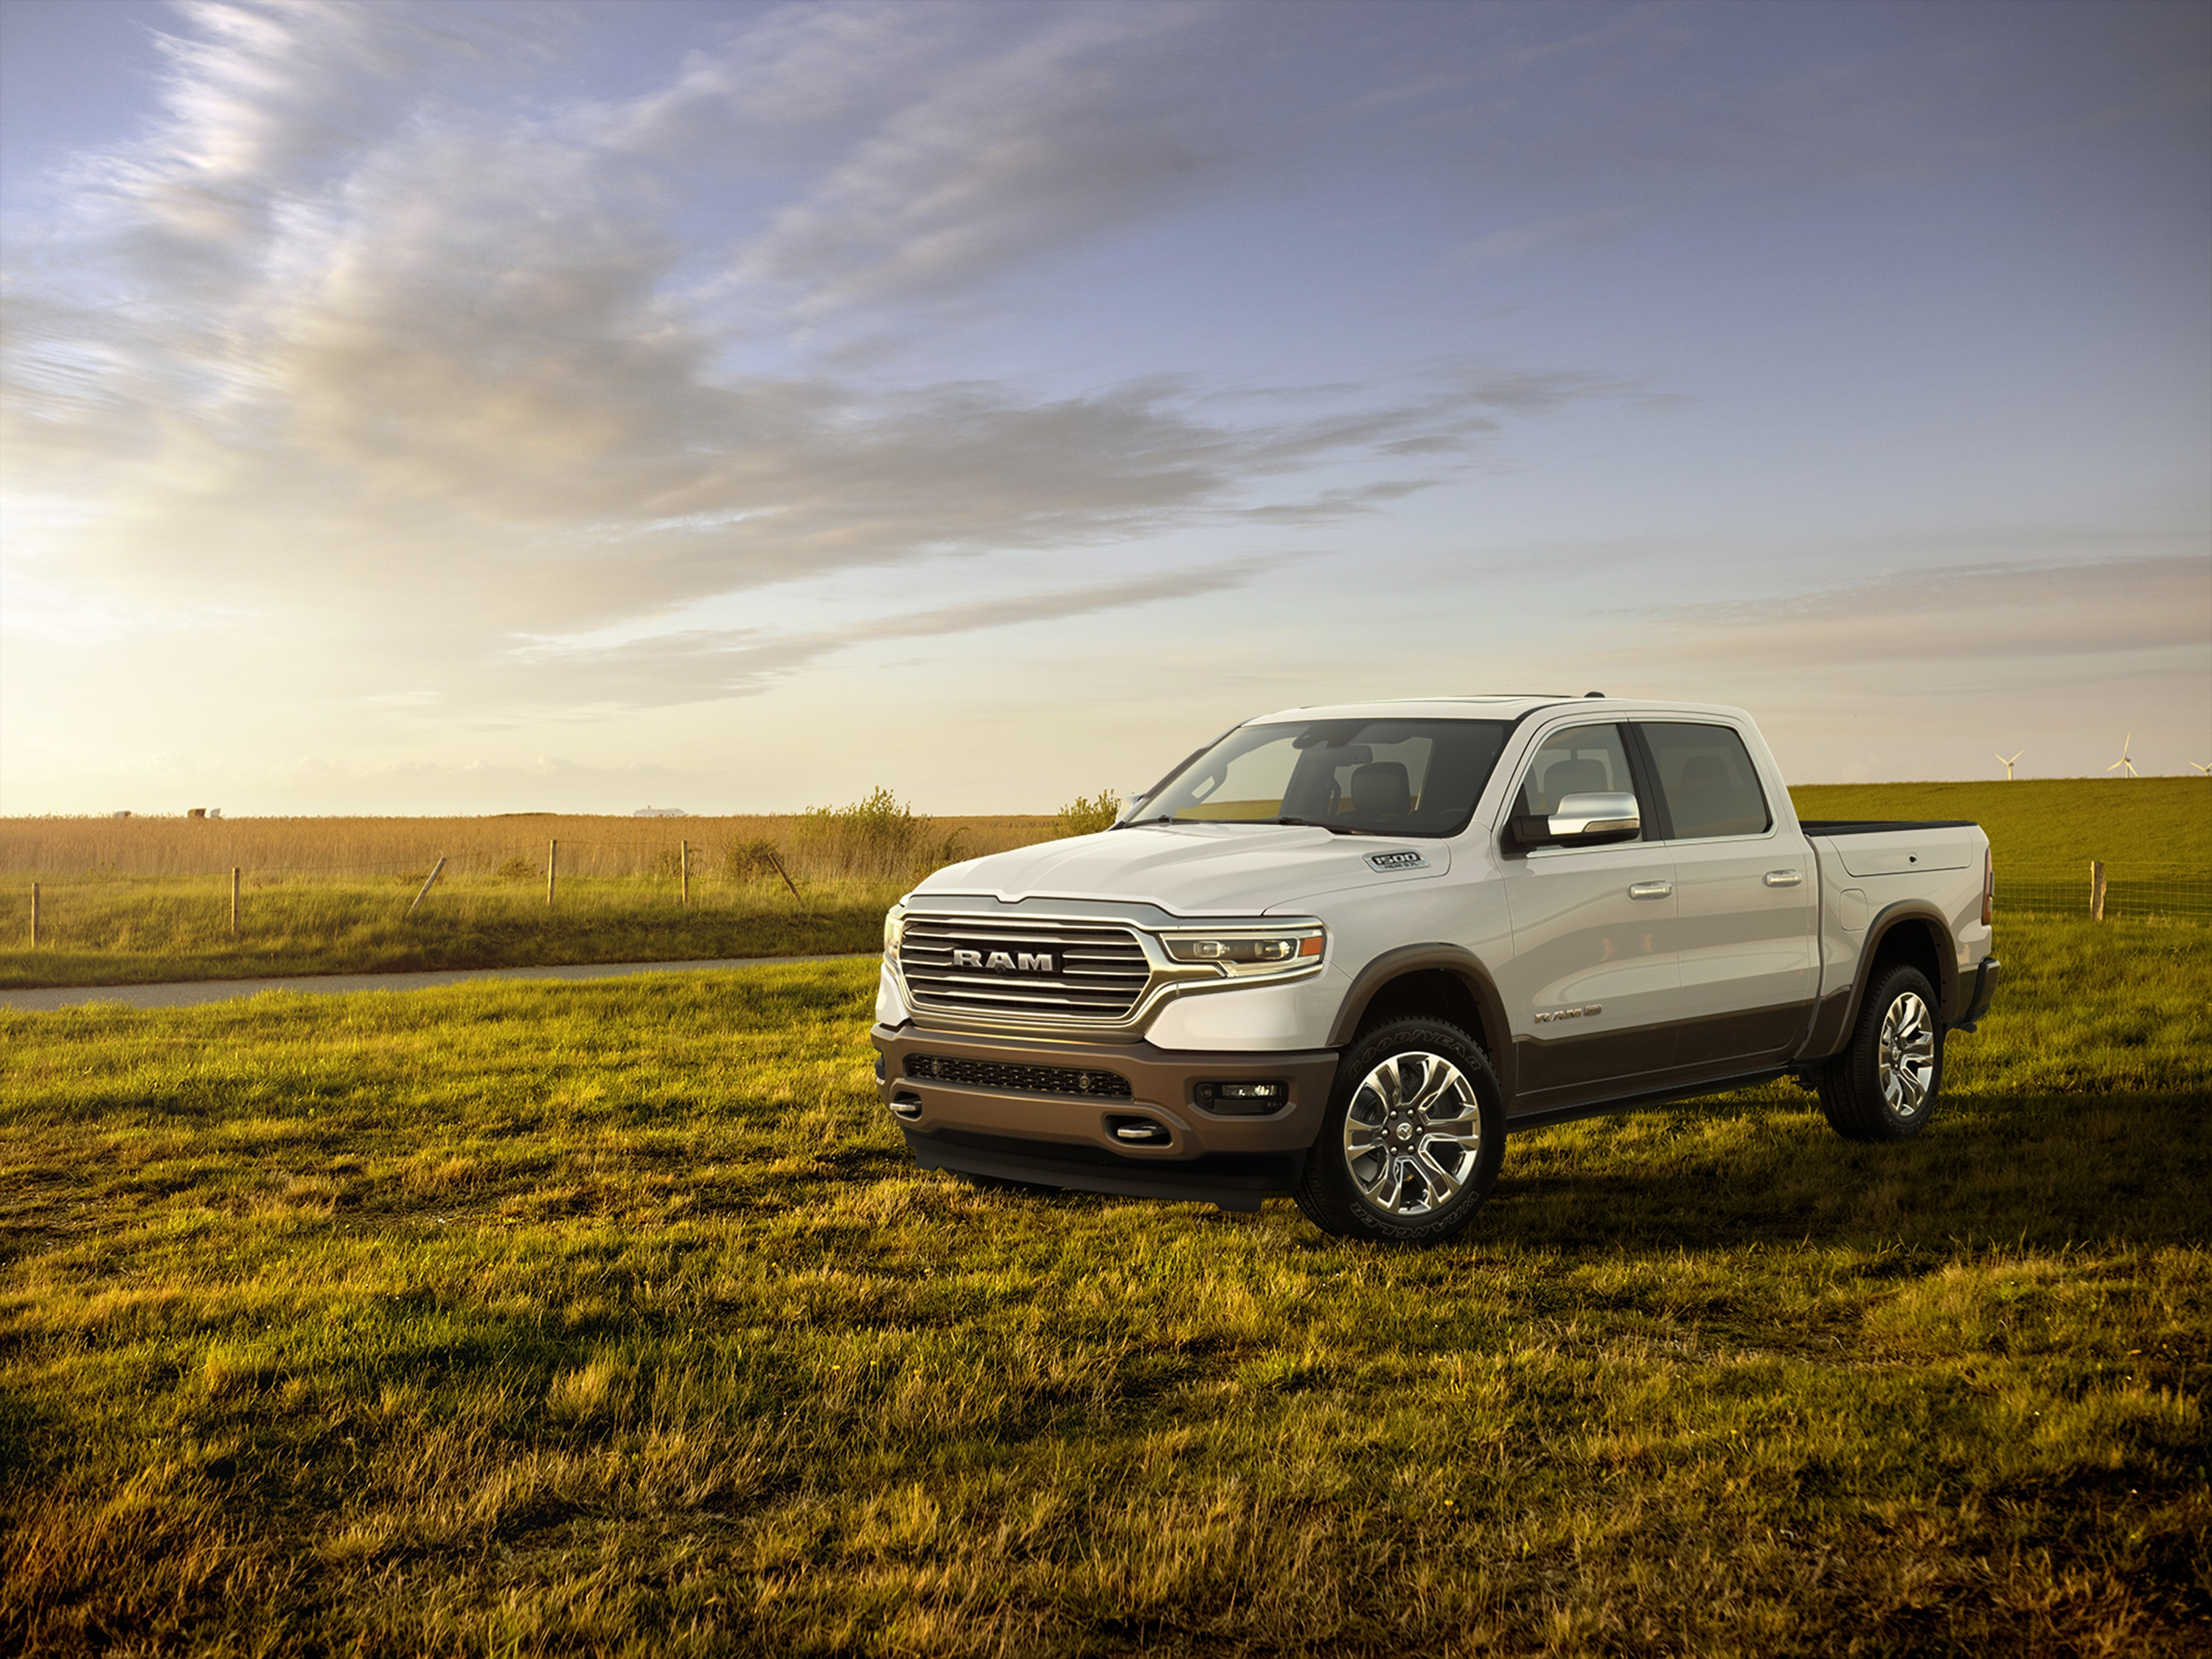 2019 Ram 1500 Laramie Longhorn Edition Front Three-Quarter Wallpapers #10 of 29